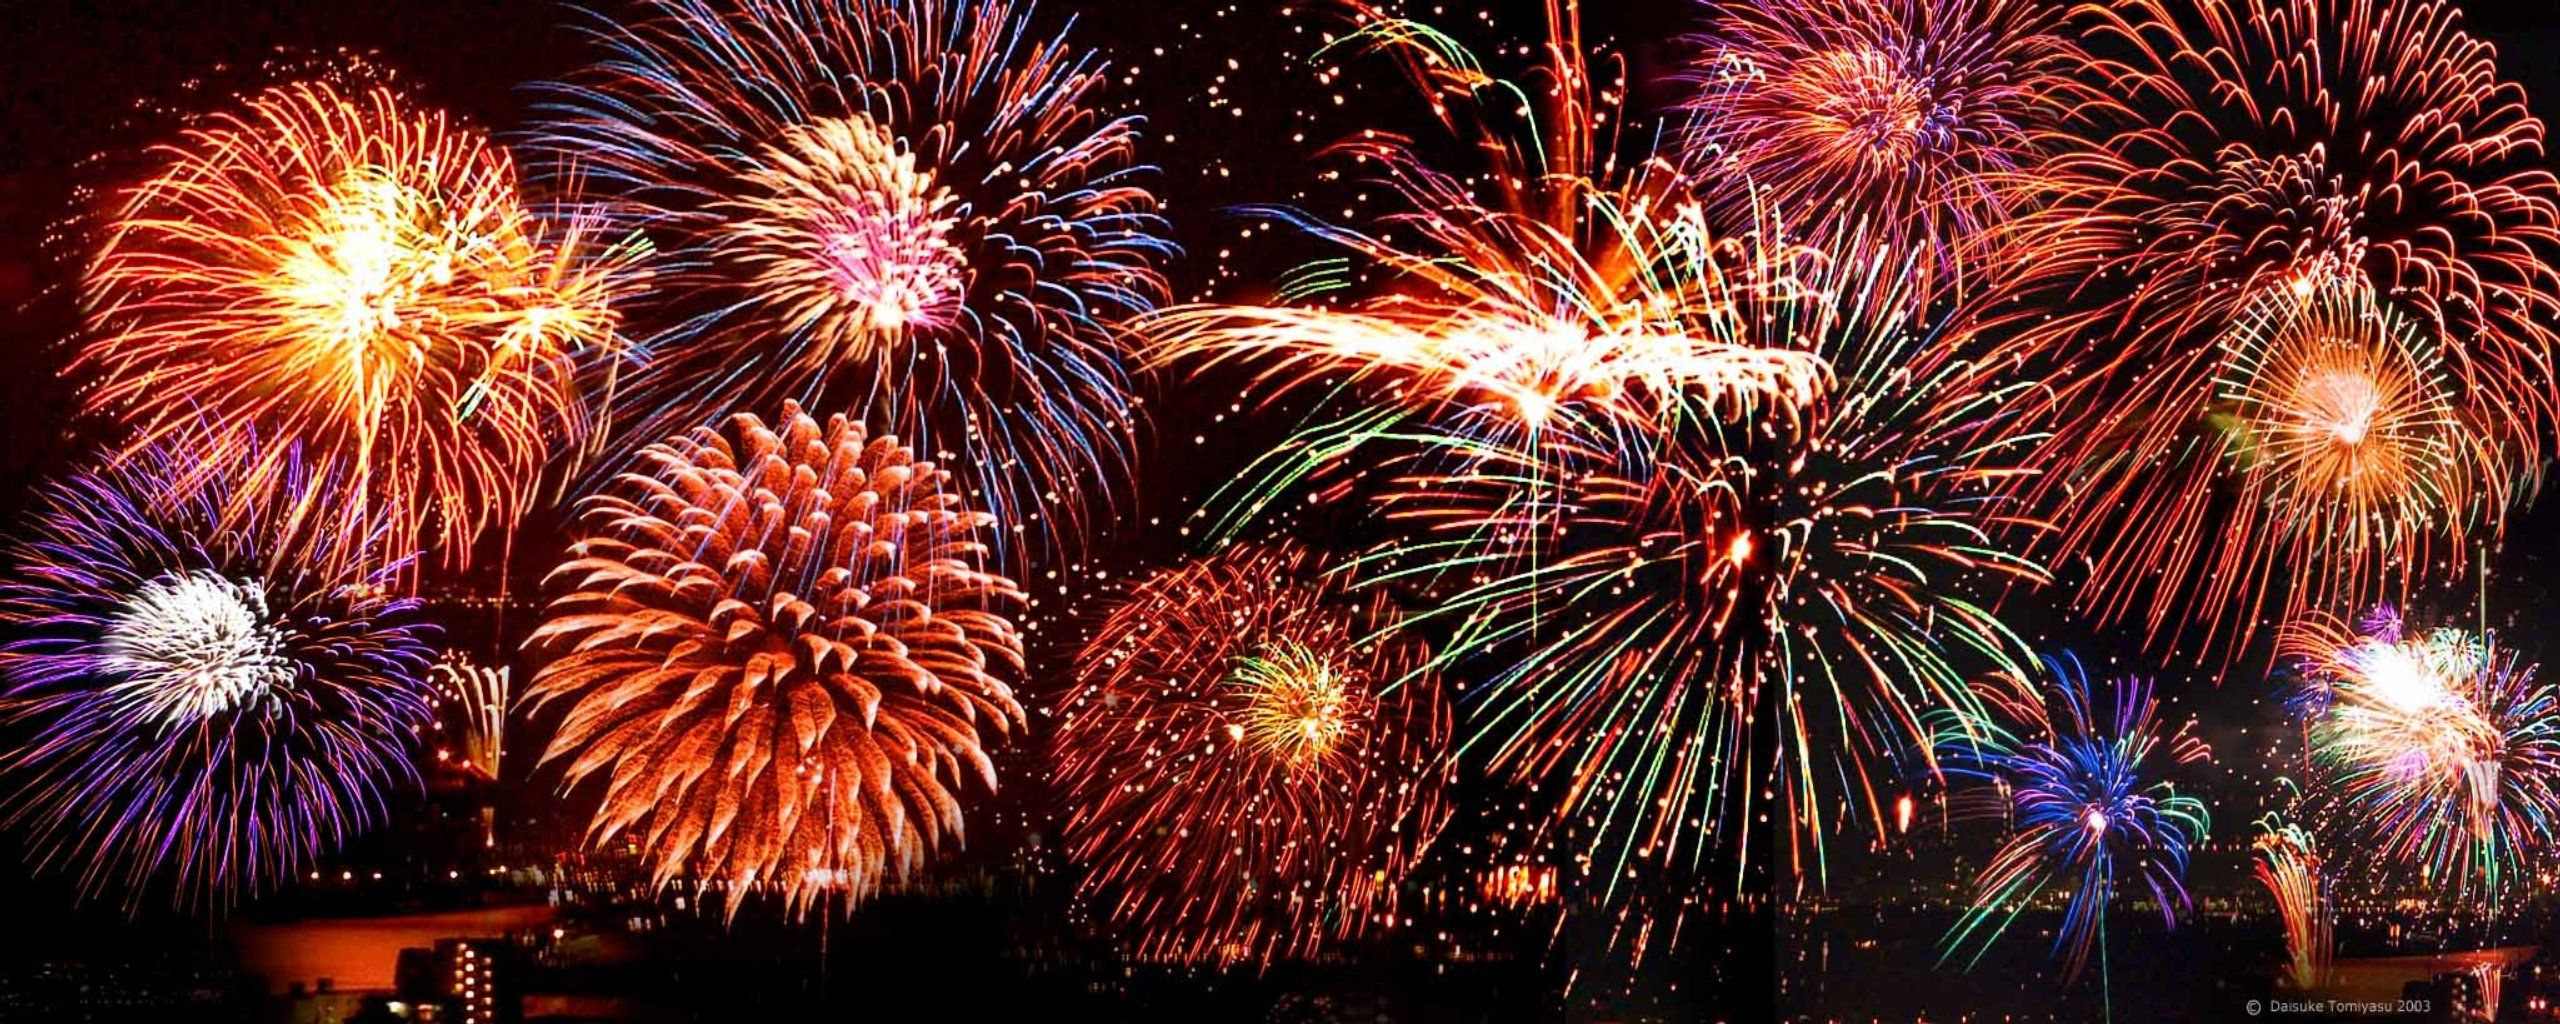 Fireworks High Quality Background on Wallpapers Vista